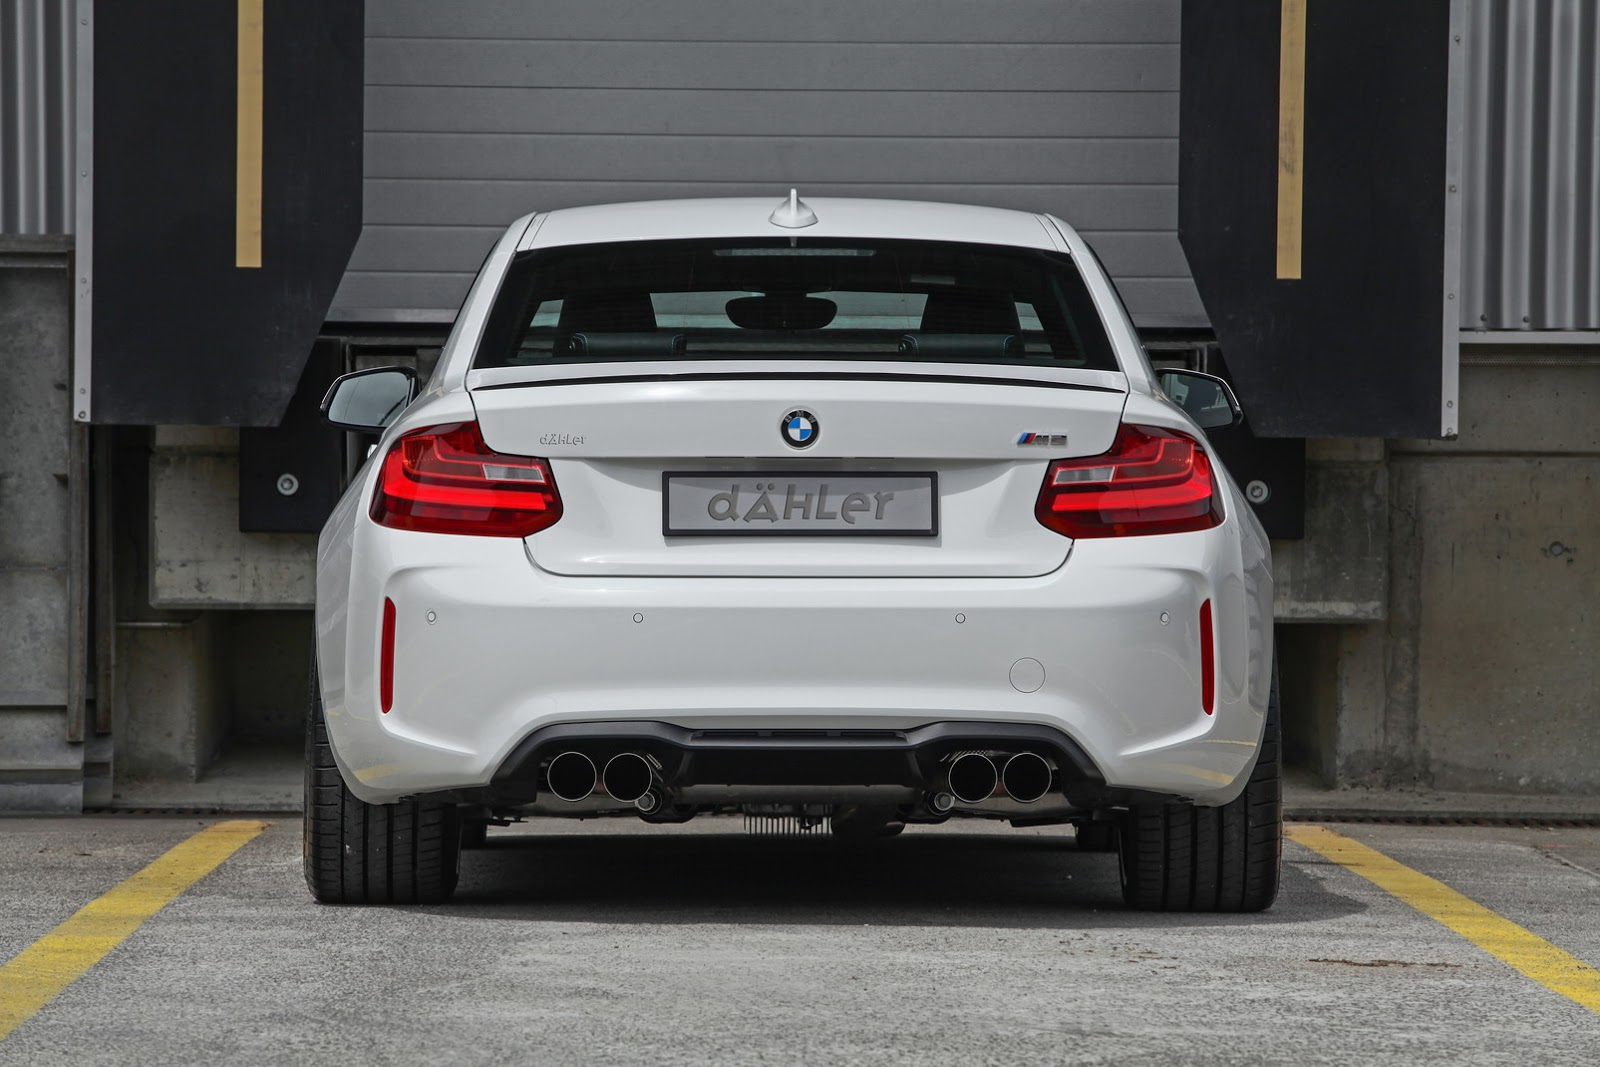 Dähler Offer BMW M2 Coupe With BMW M3/M4 S55 Engine